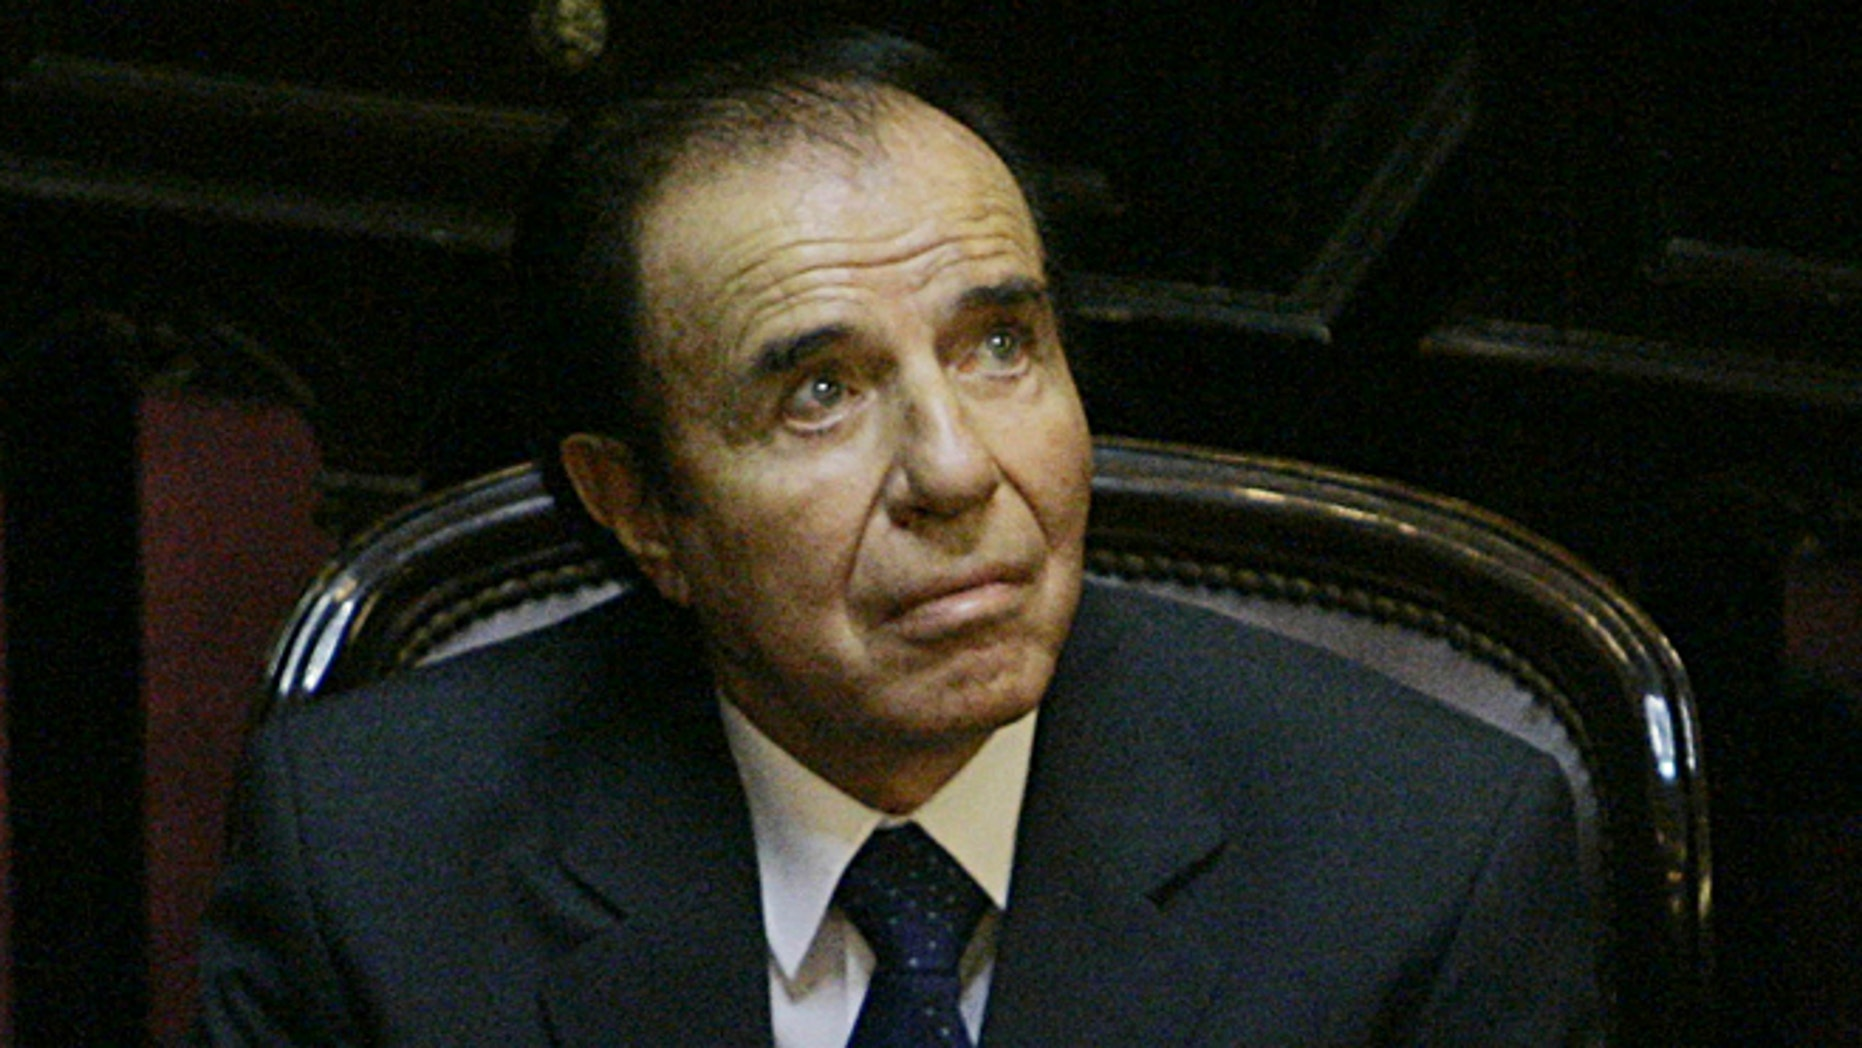 Argentina's former President Carlos Menem in a 2005 file photo.